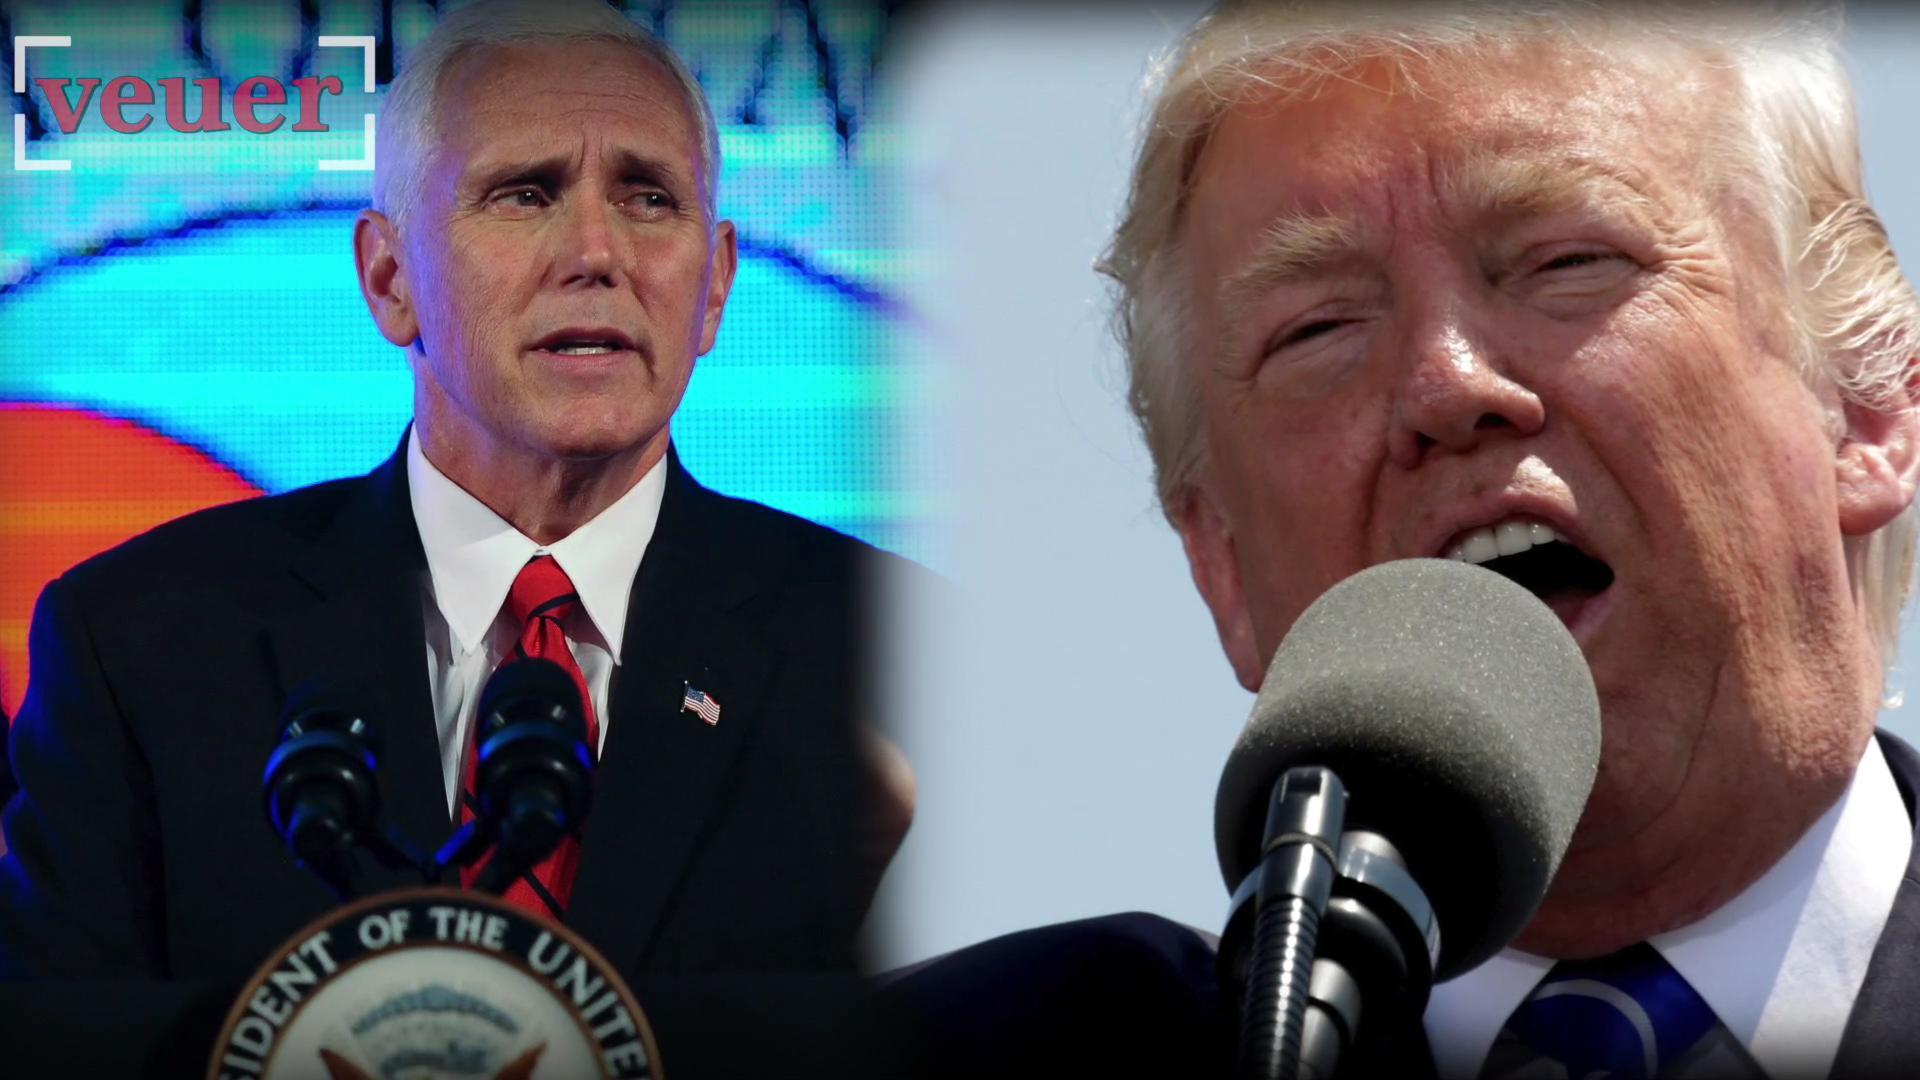 Trump and Pence Approval Ratings Fall to All-time Lows